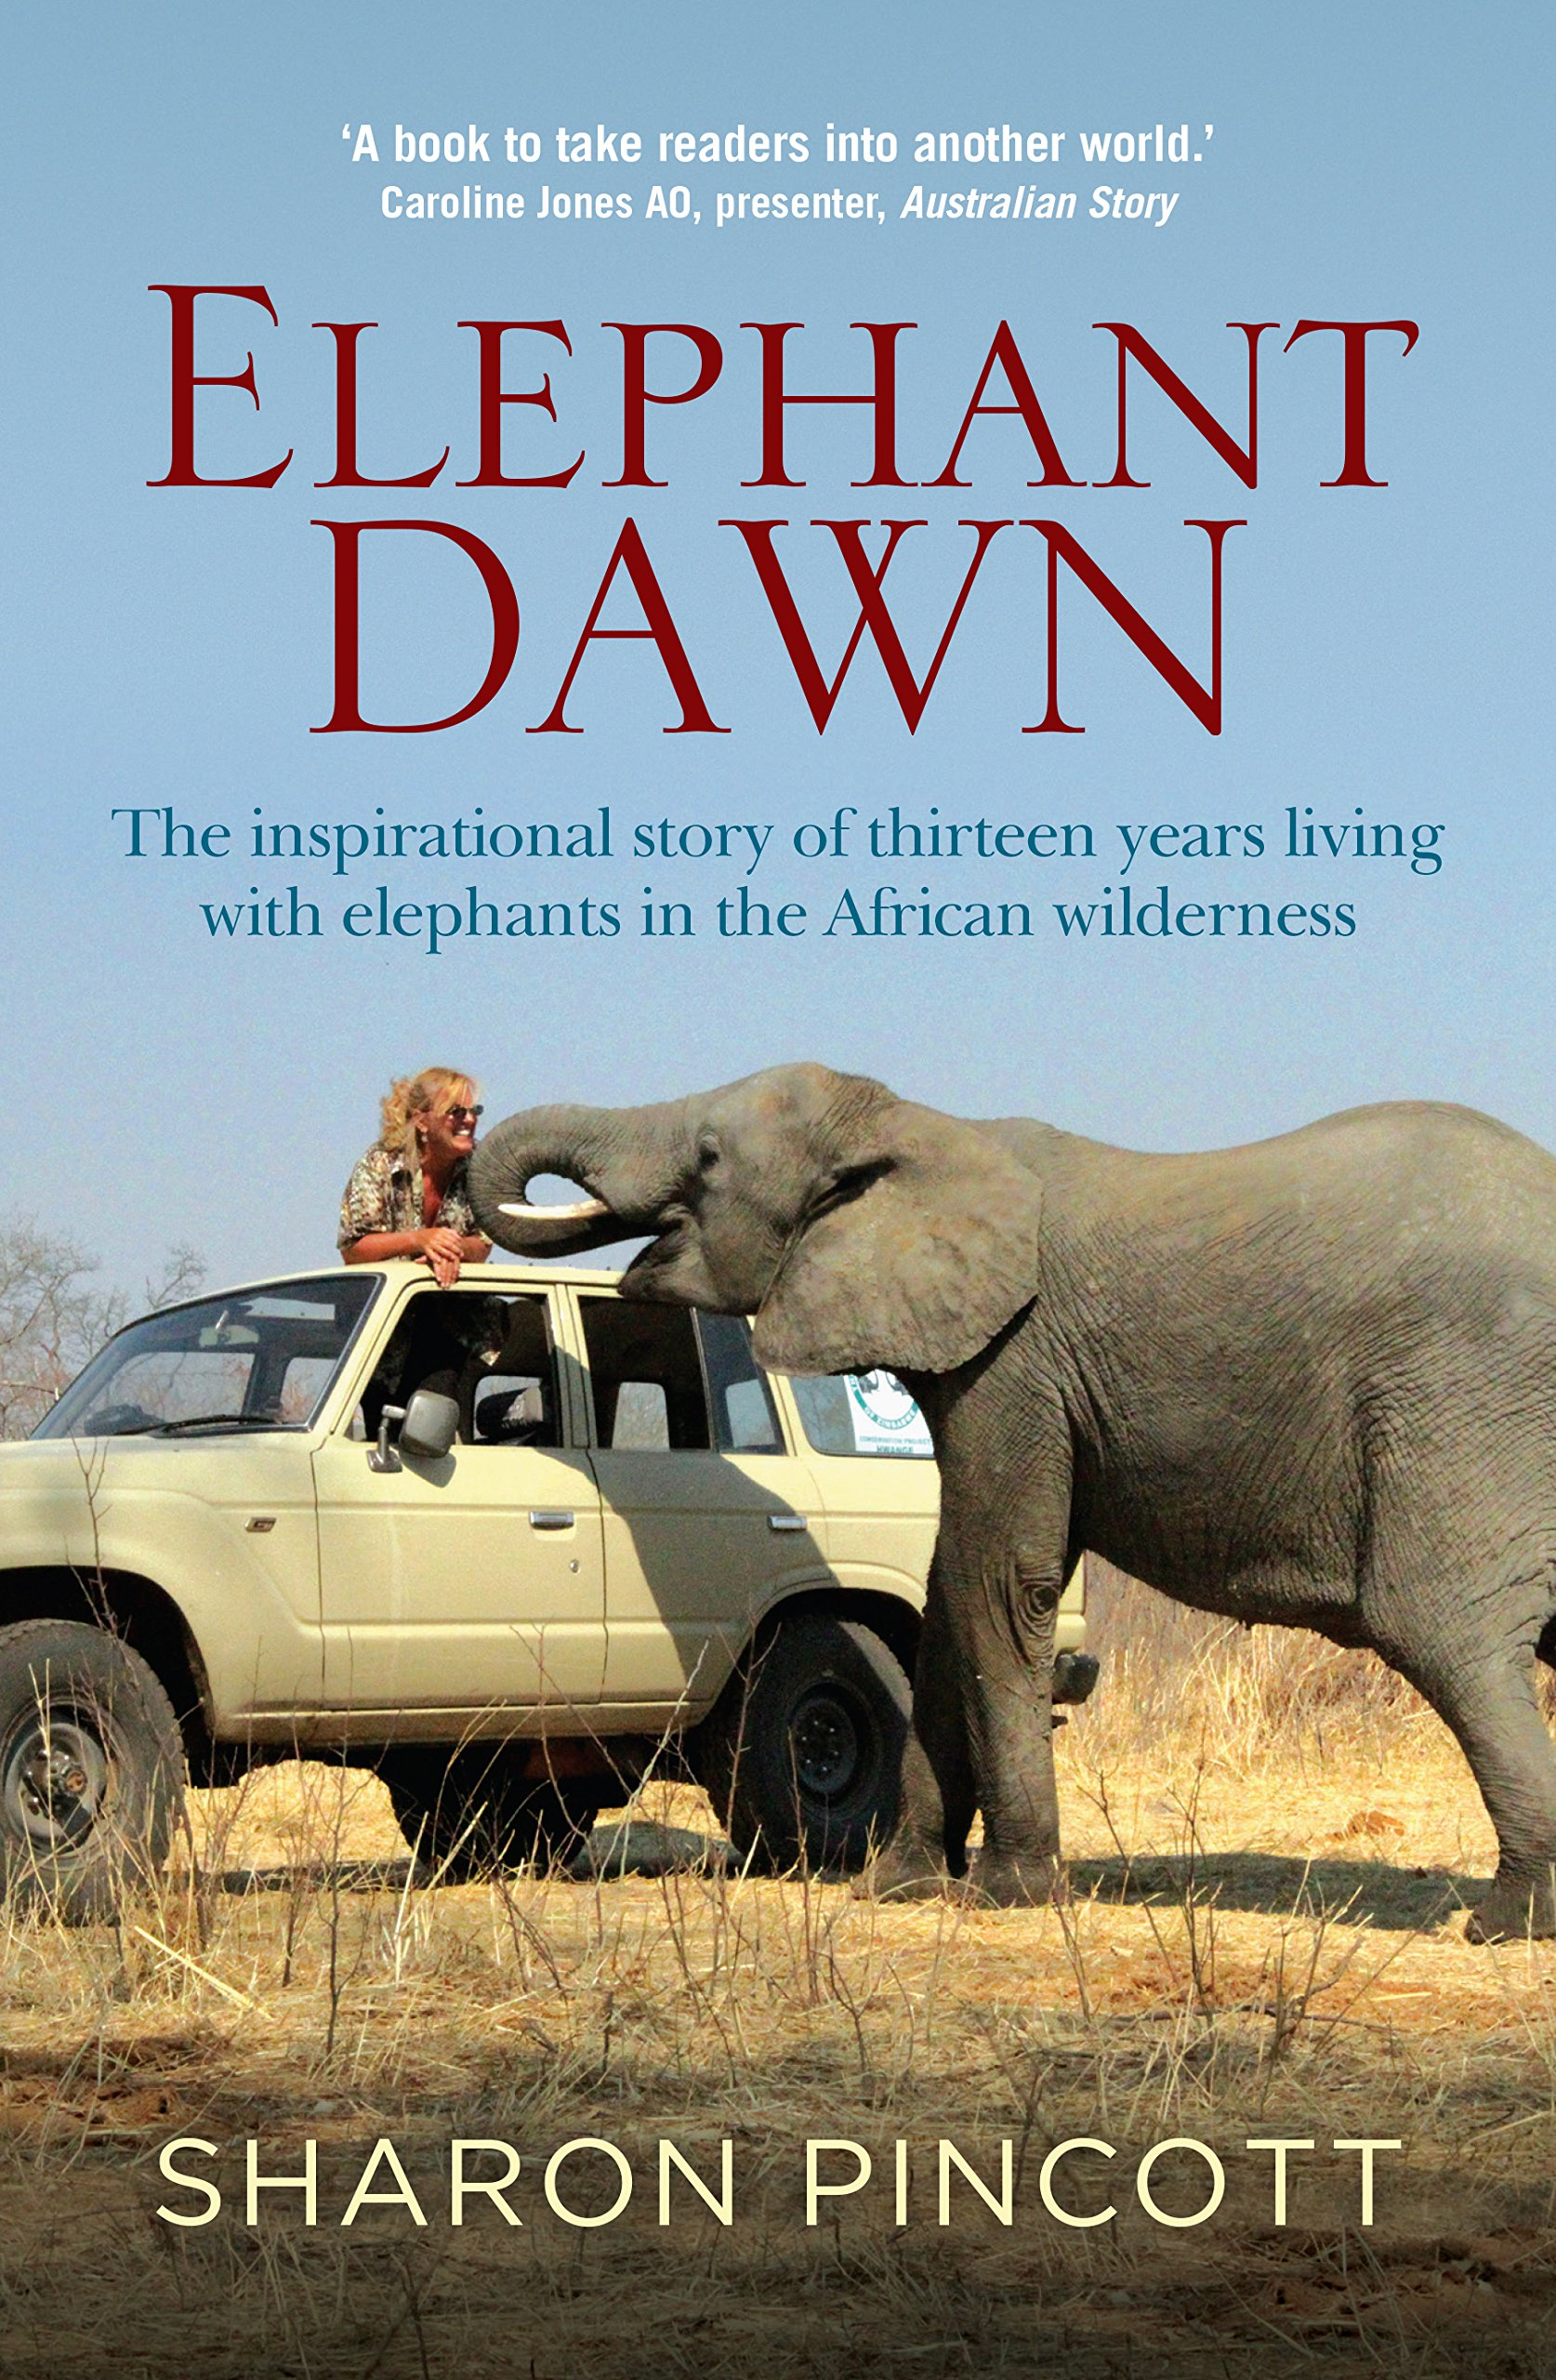 Elephant Dawn: The Inspirational Story of Thirteen Years Living with  Elephants in the African Wilderness: Sharon Pincott: 9781760290337:  Amazon.com: Books